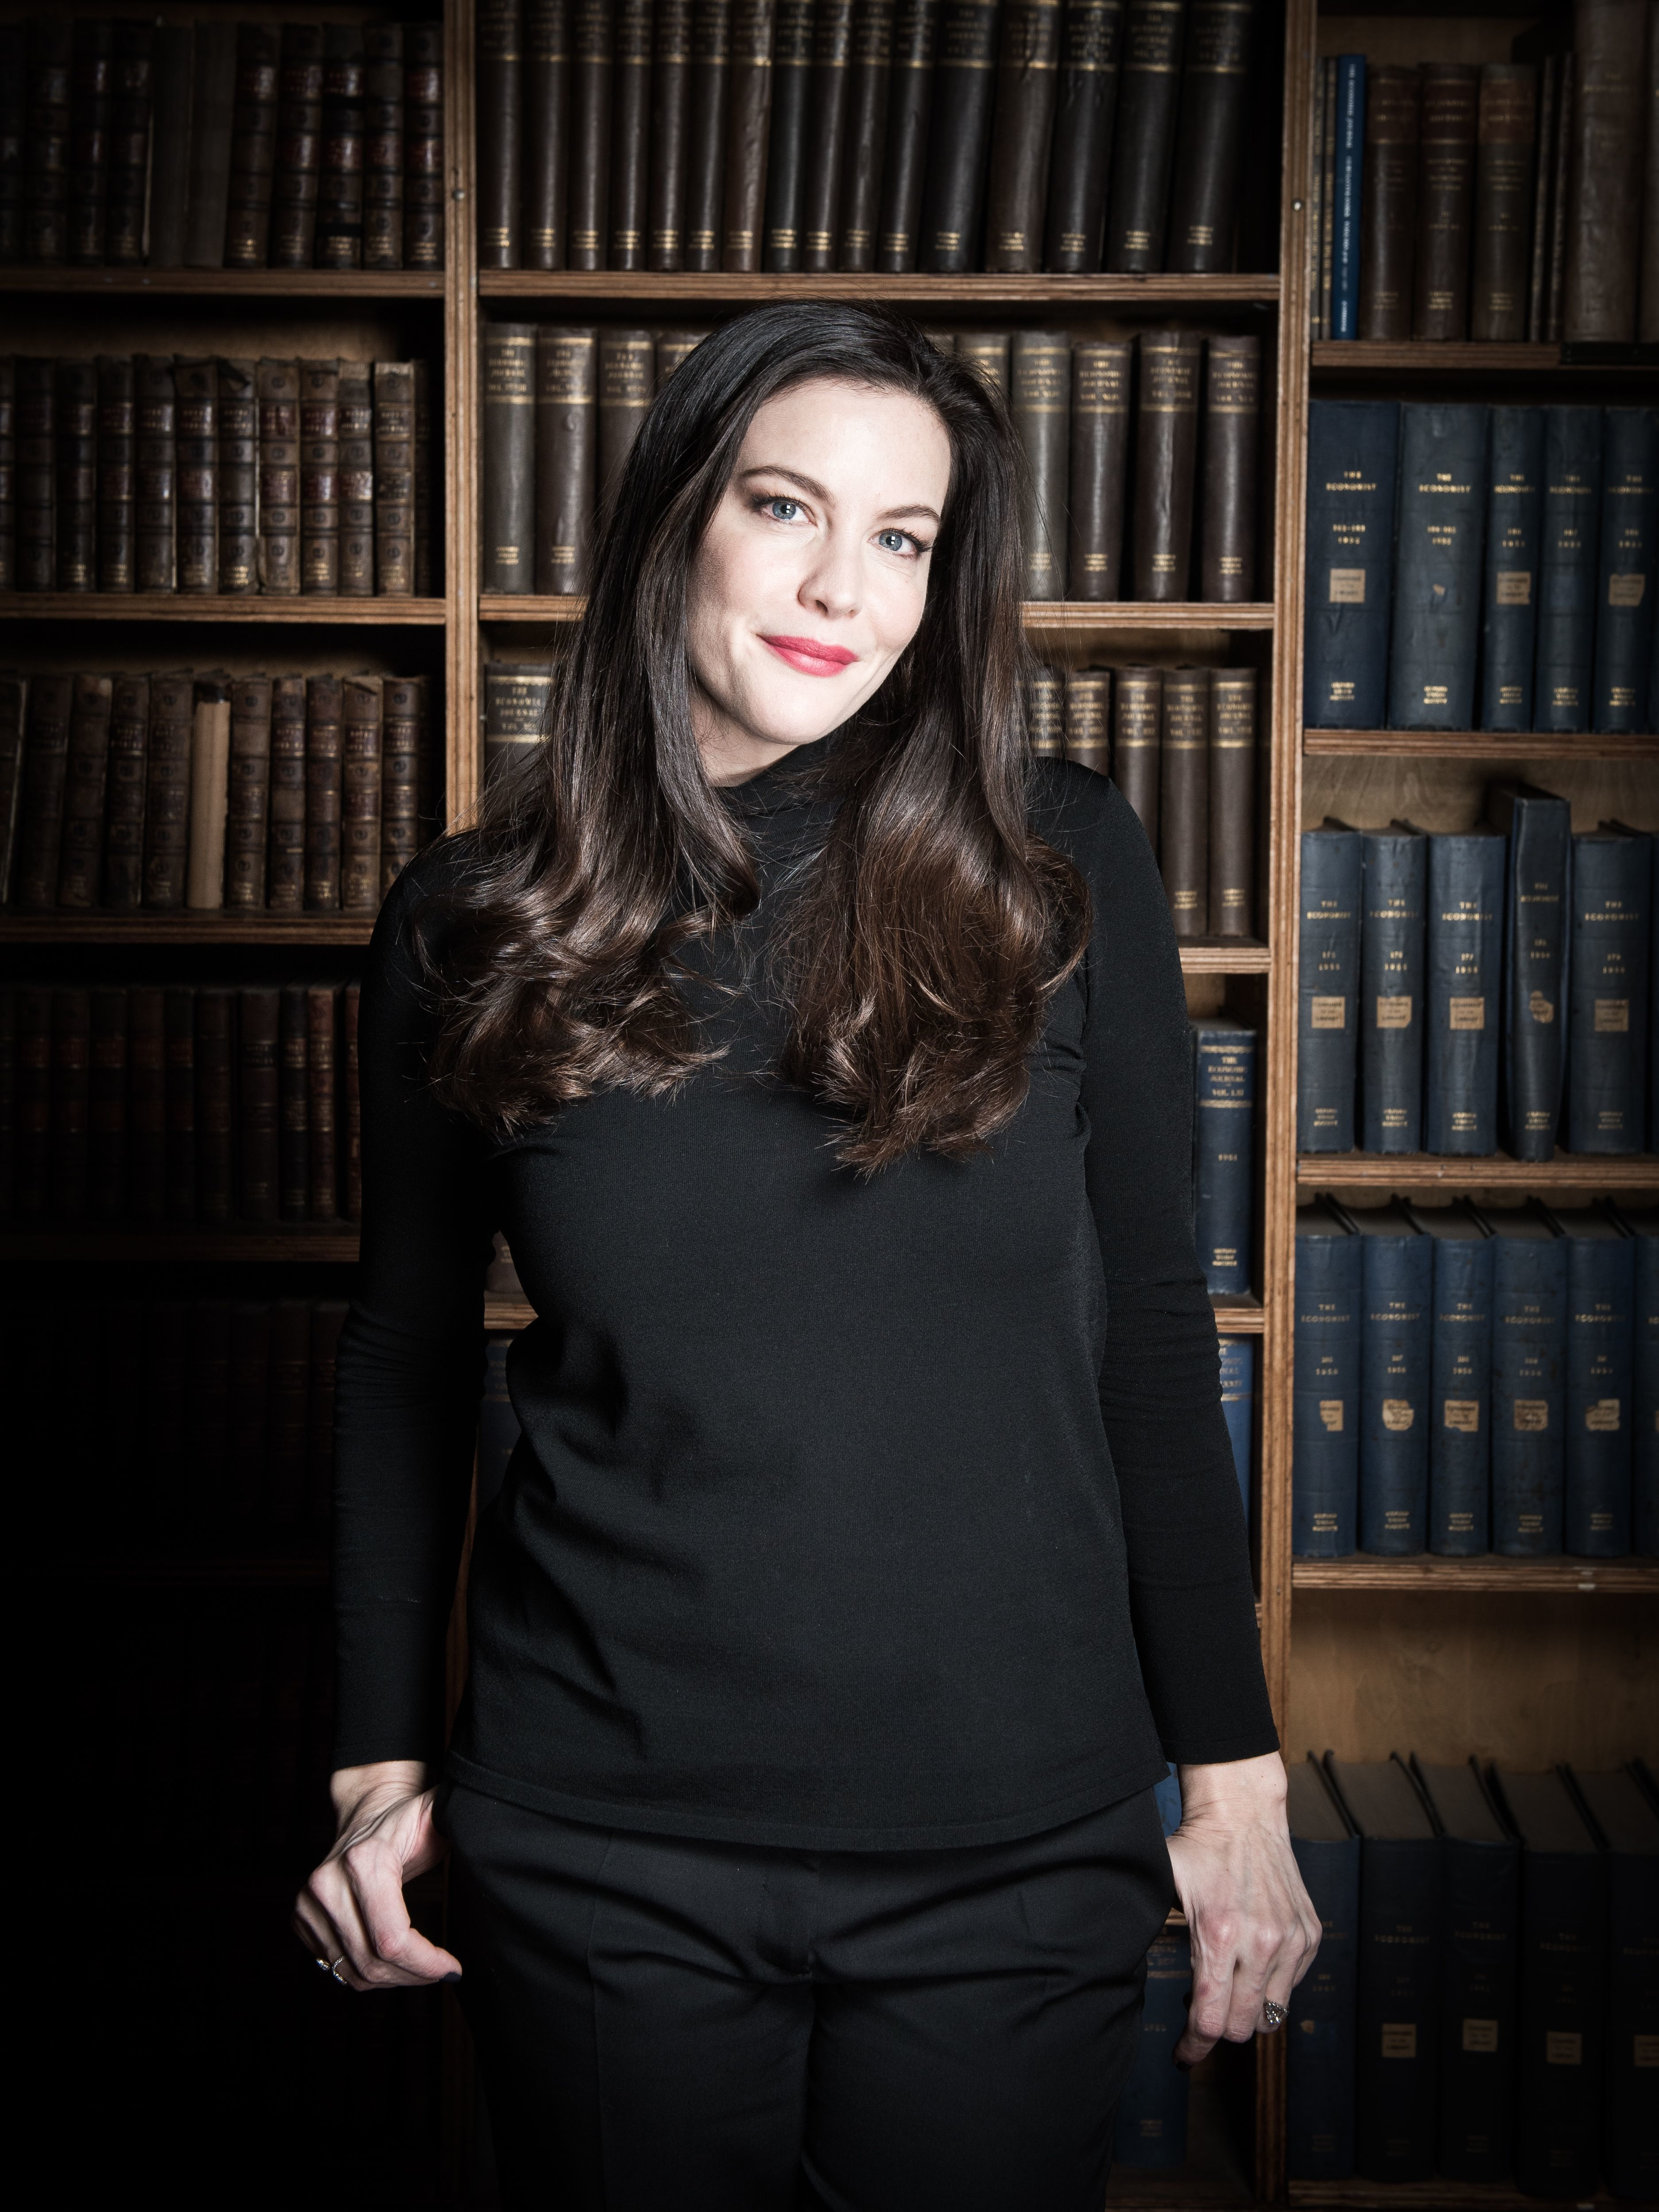 Liv Tyler appears at the Oxford Union in the UK on Nov. 29, 2017.